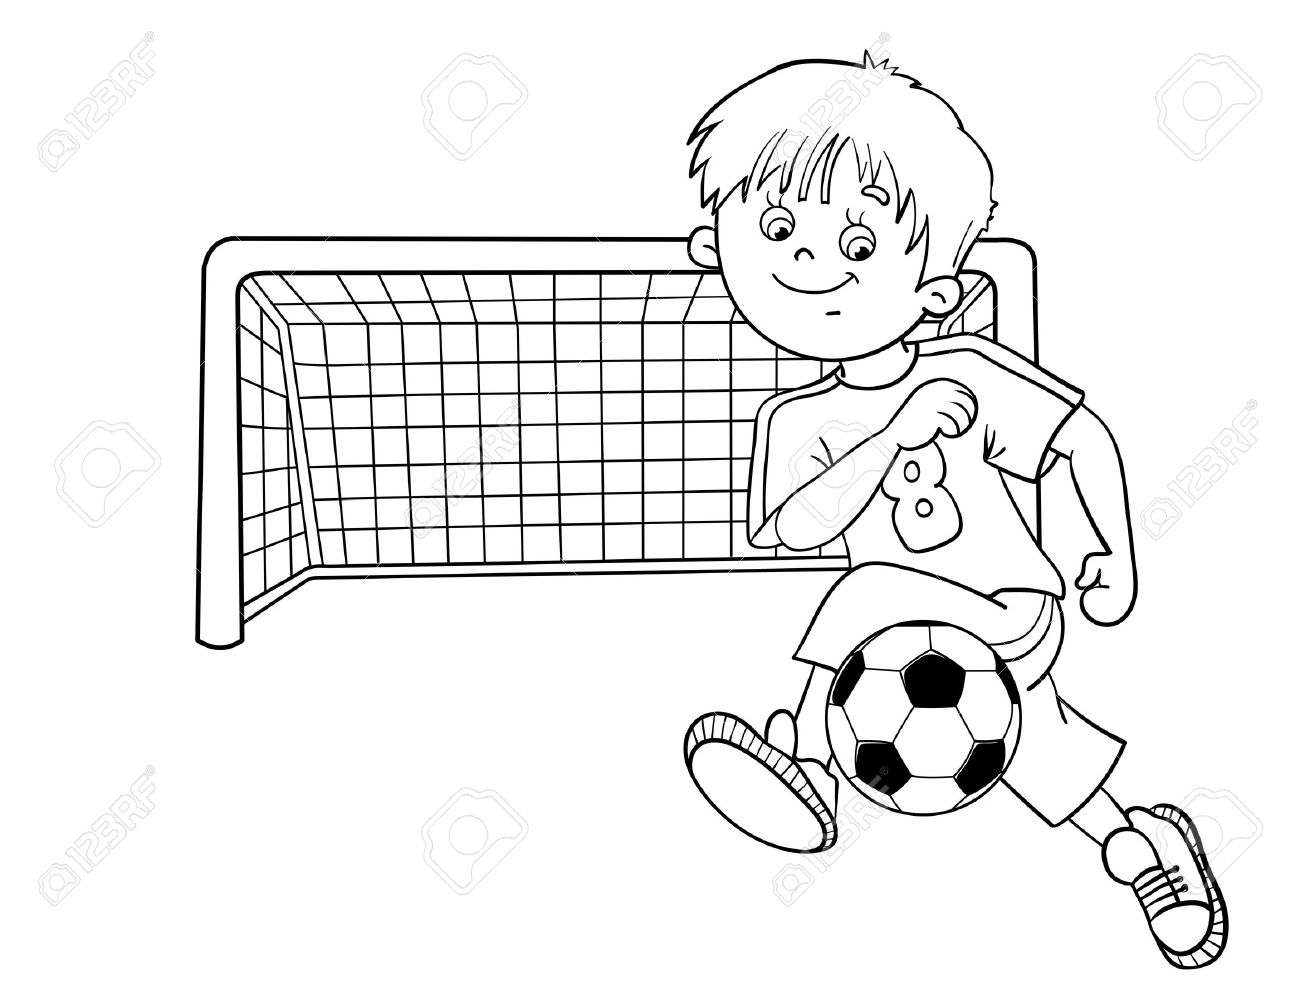 1300x1000 Printable Soccer Field Coloring Pages Free Coloring Pages Download